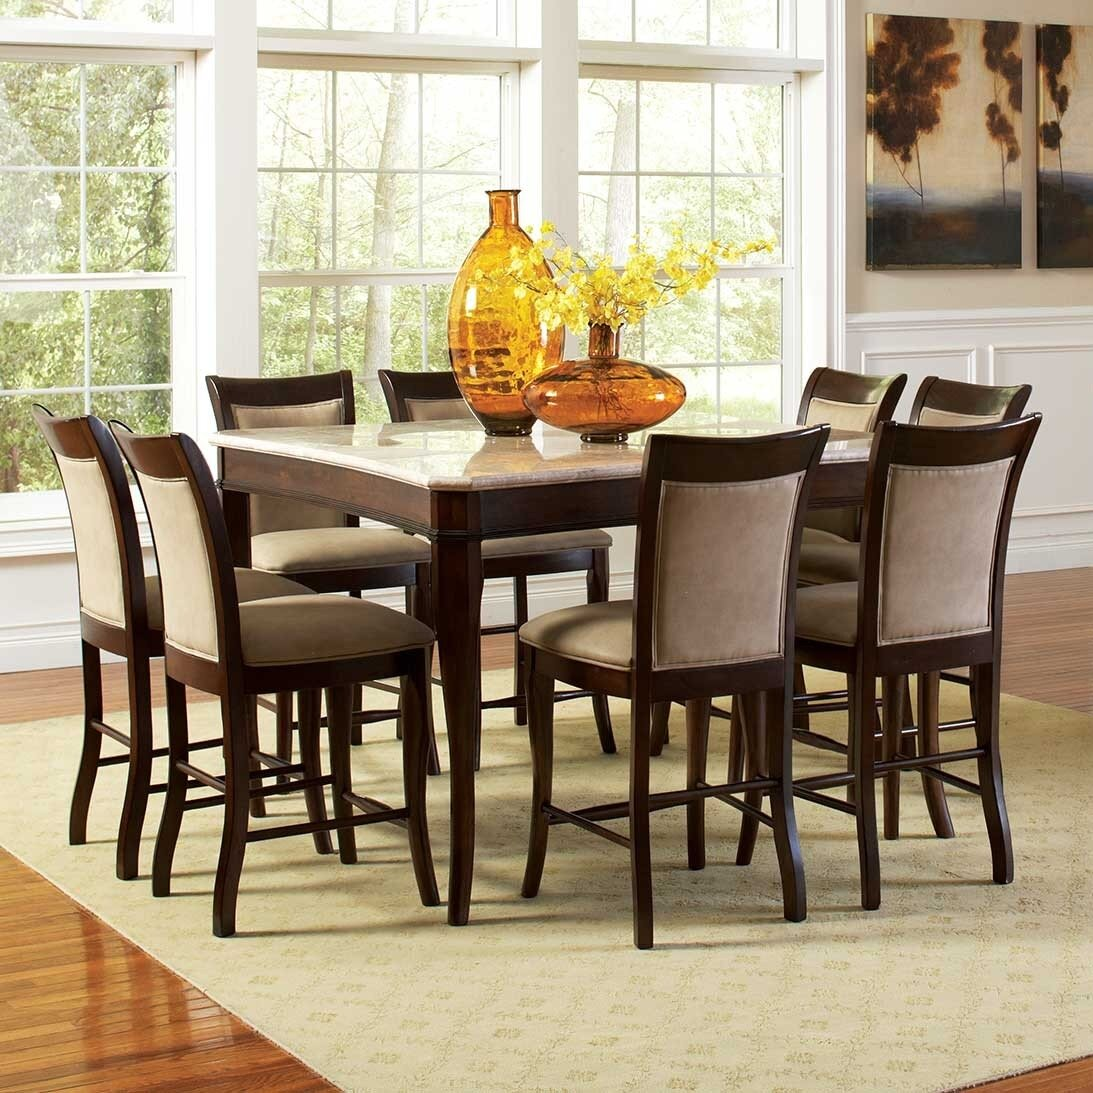 Darby Home Co Swenson Counter Height Dining Table & Reviews   Wayfair